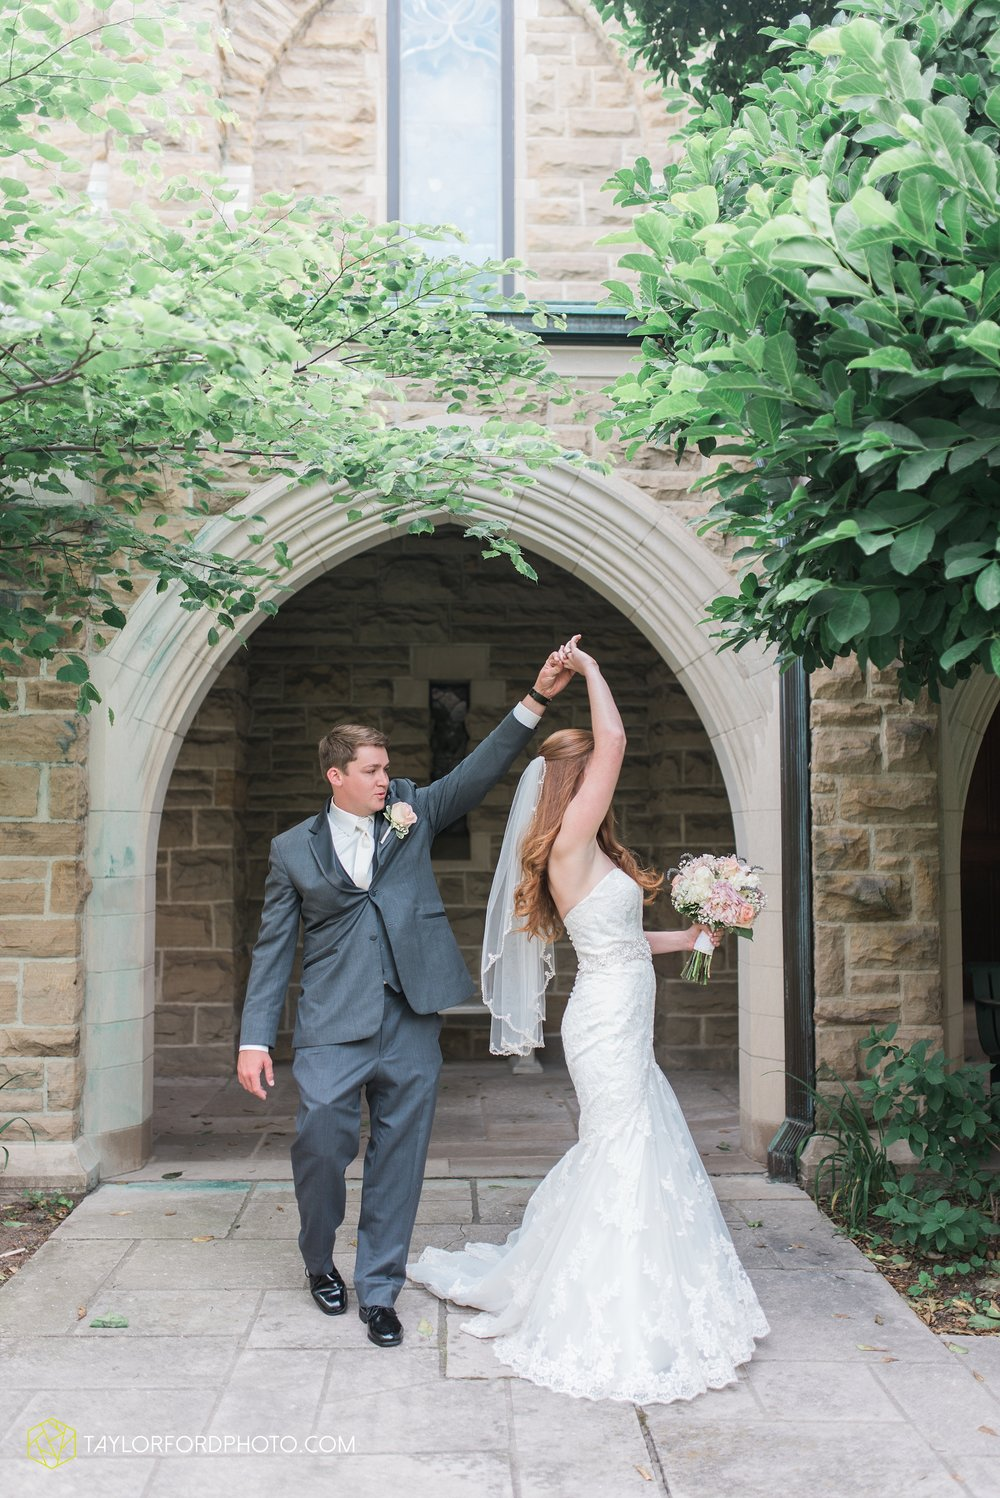 ford-wayne-indiana-trinity-lutheran-church-becca-connor-bonnell-taylor-ford-wedding-photography_0050.jpg